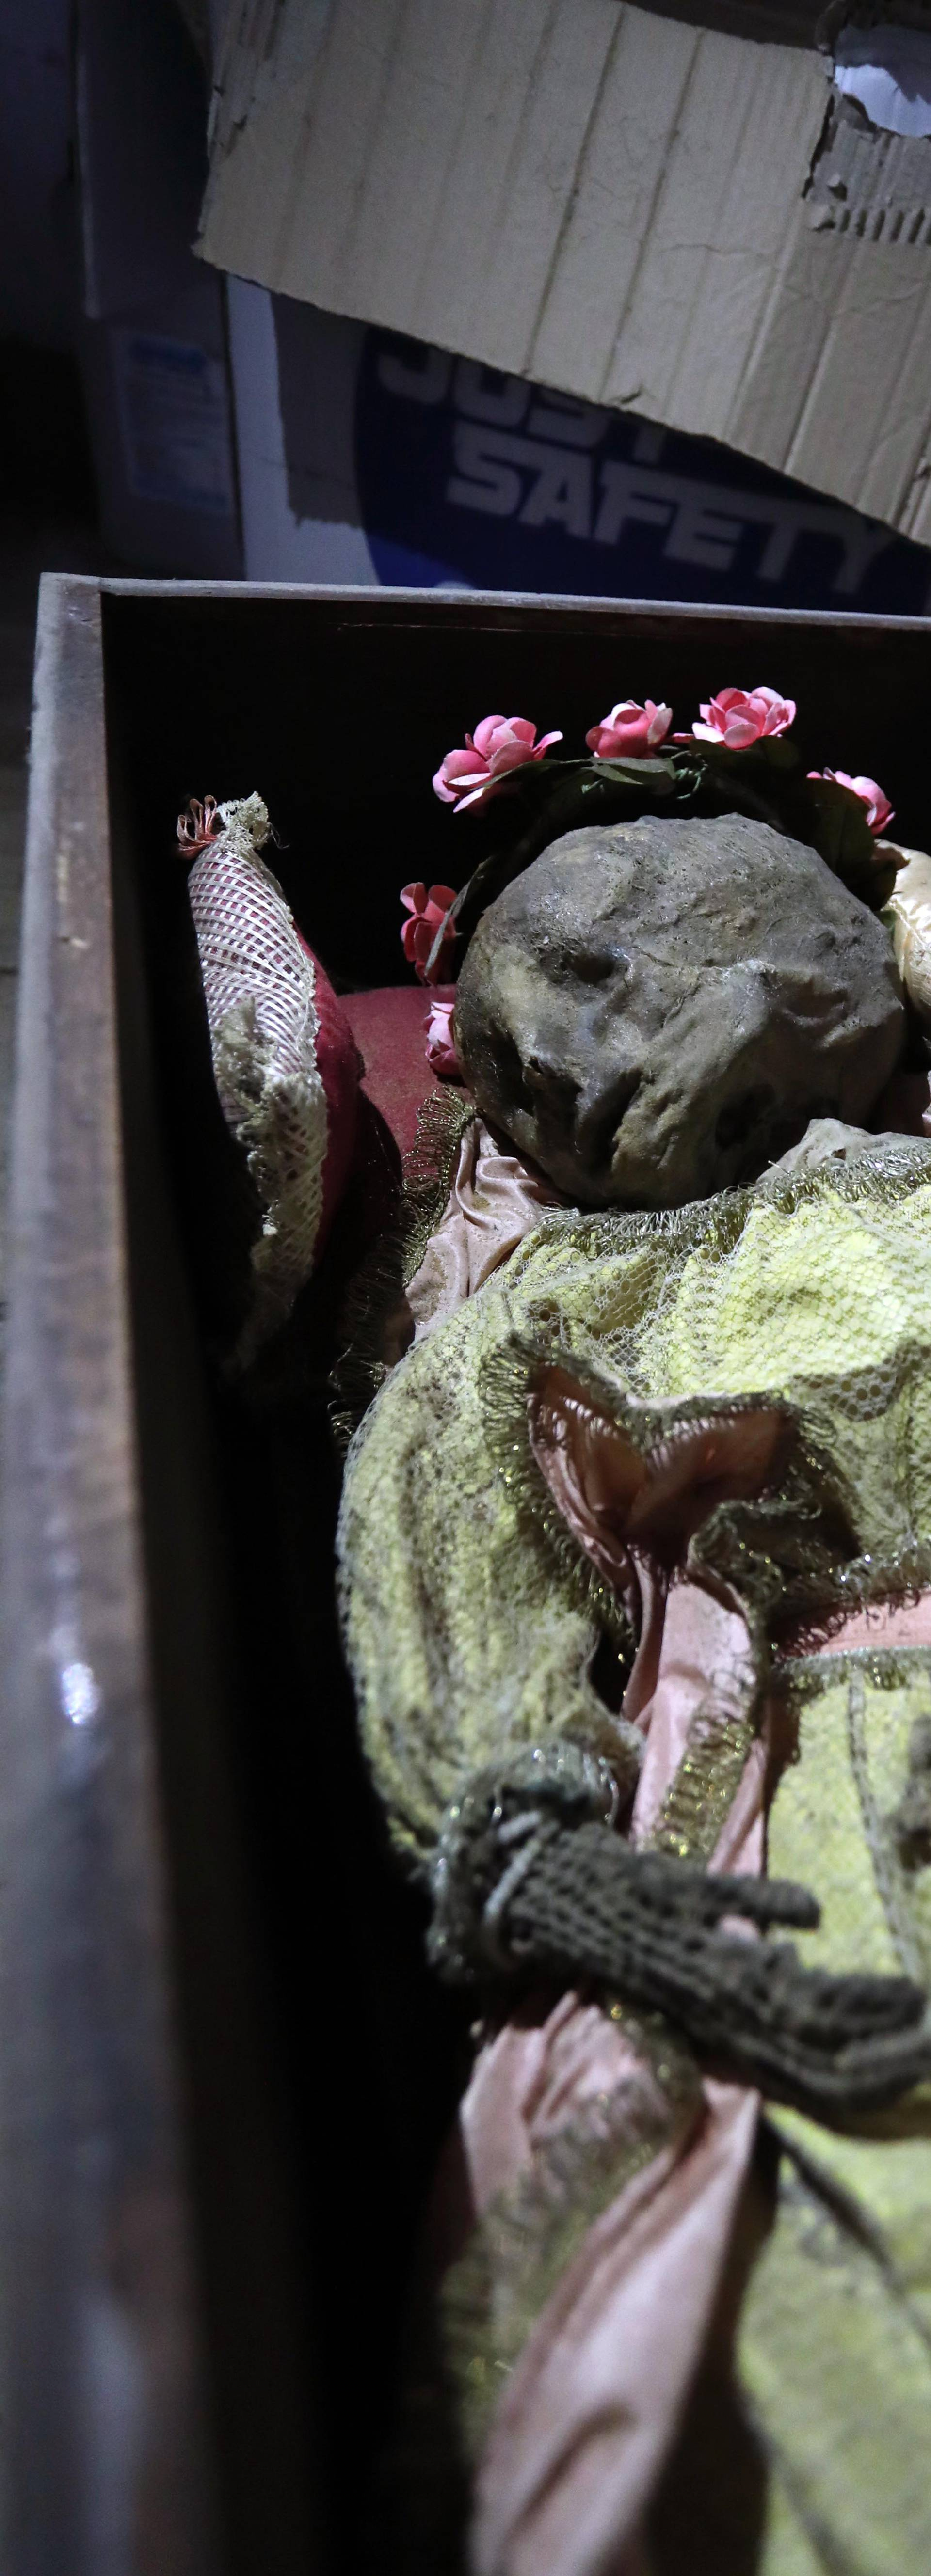 Palermo, a mummified child found in a trunk in the graveyard of the scrolls